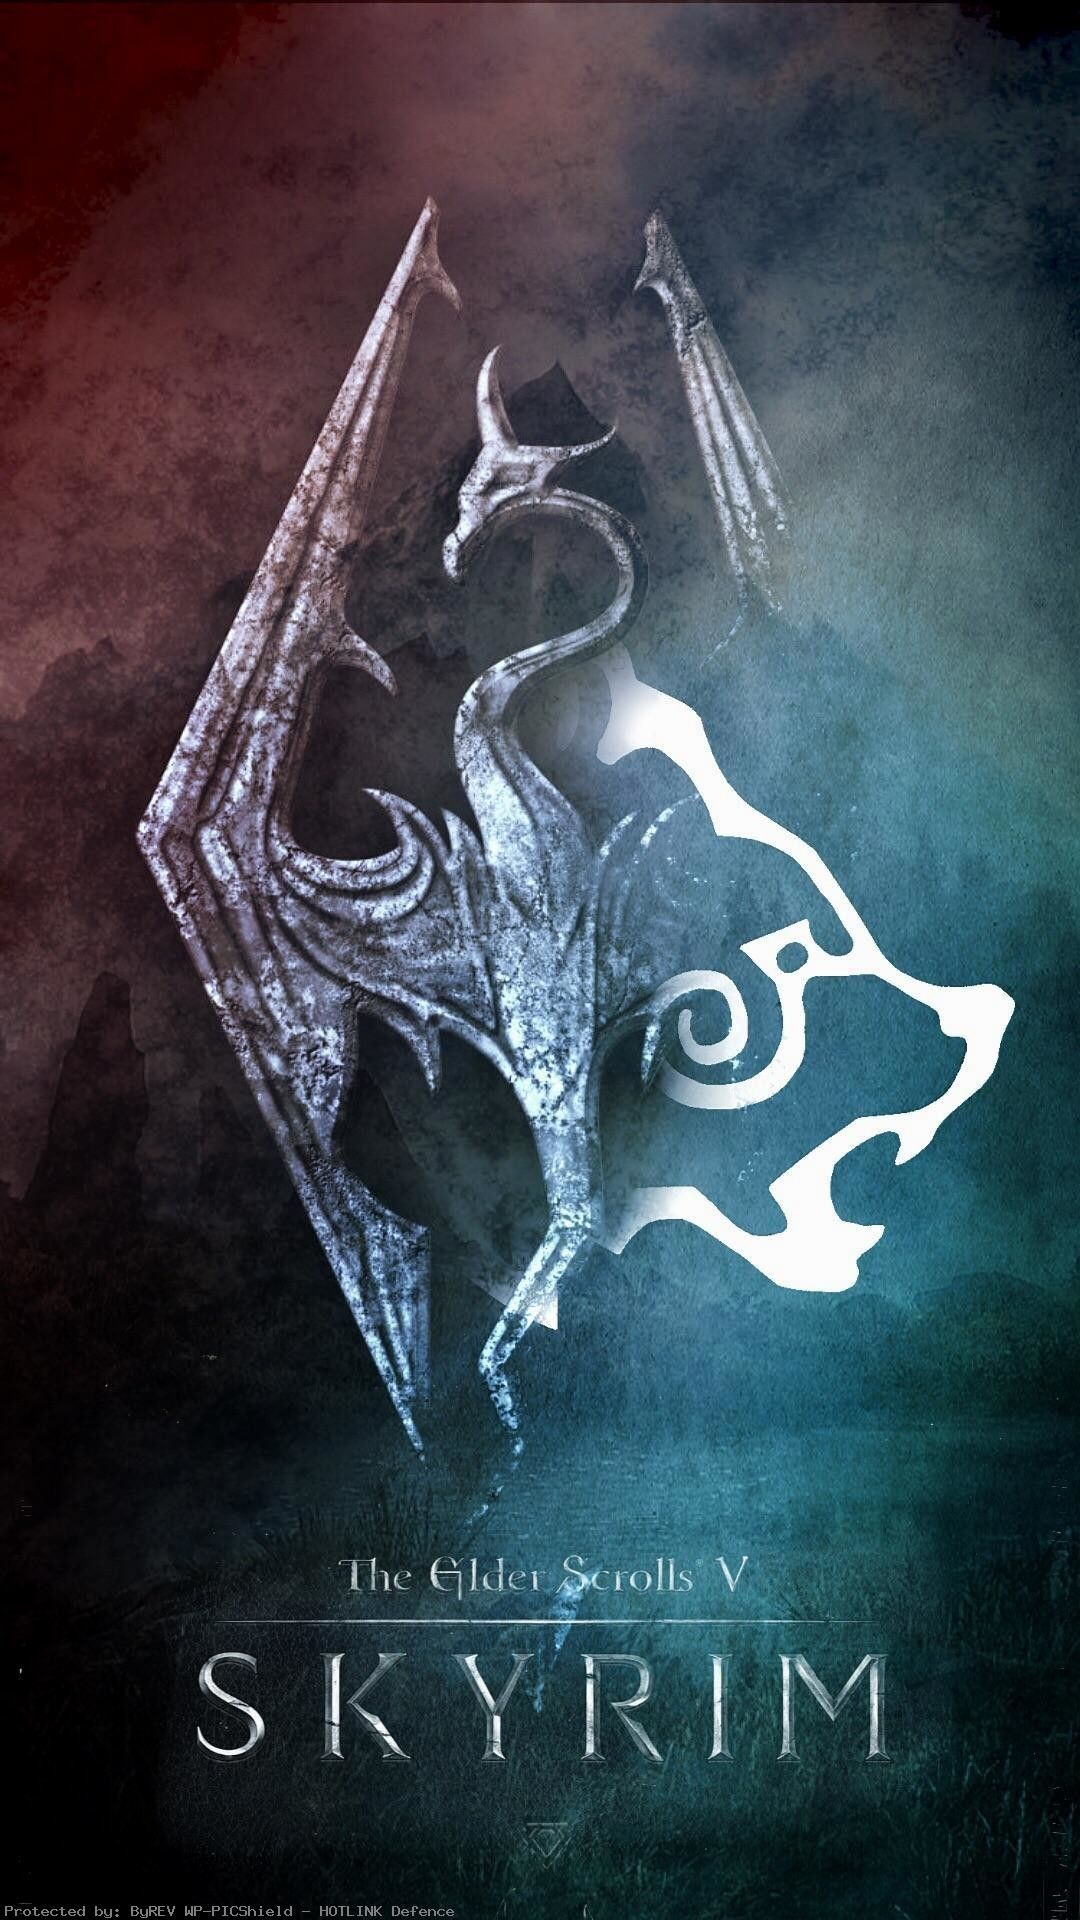 1080x1920 Iphone Oc Games Skyrim Elderscrolls Be Gaming Videogames Skyrim Wallpaper Skyrim Wallpaper Iphone Skyrim Fanart